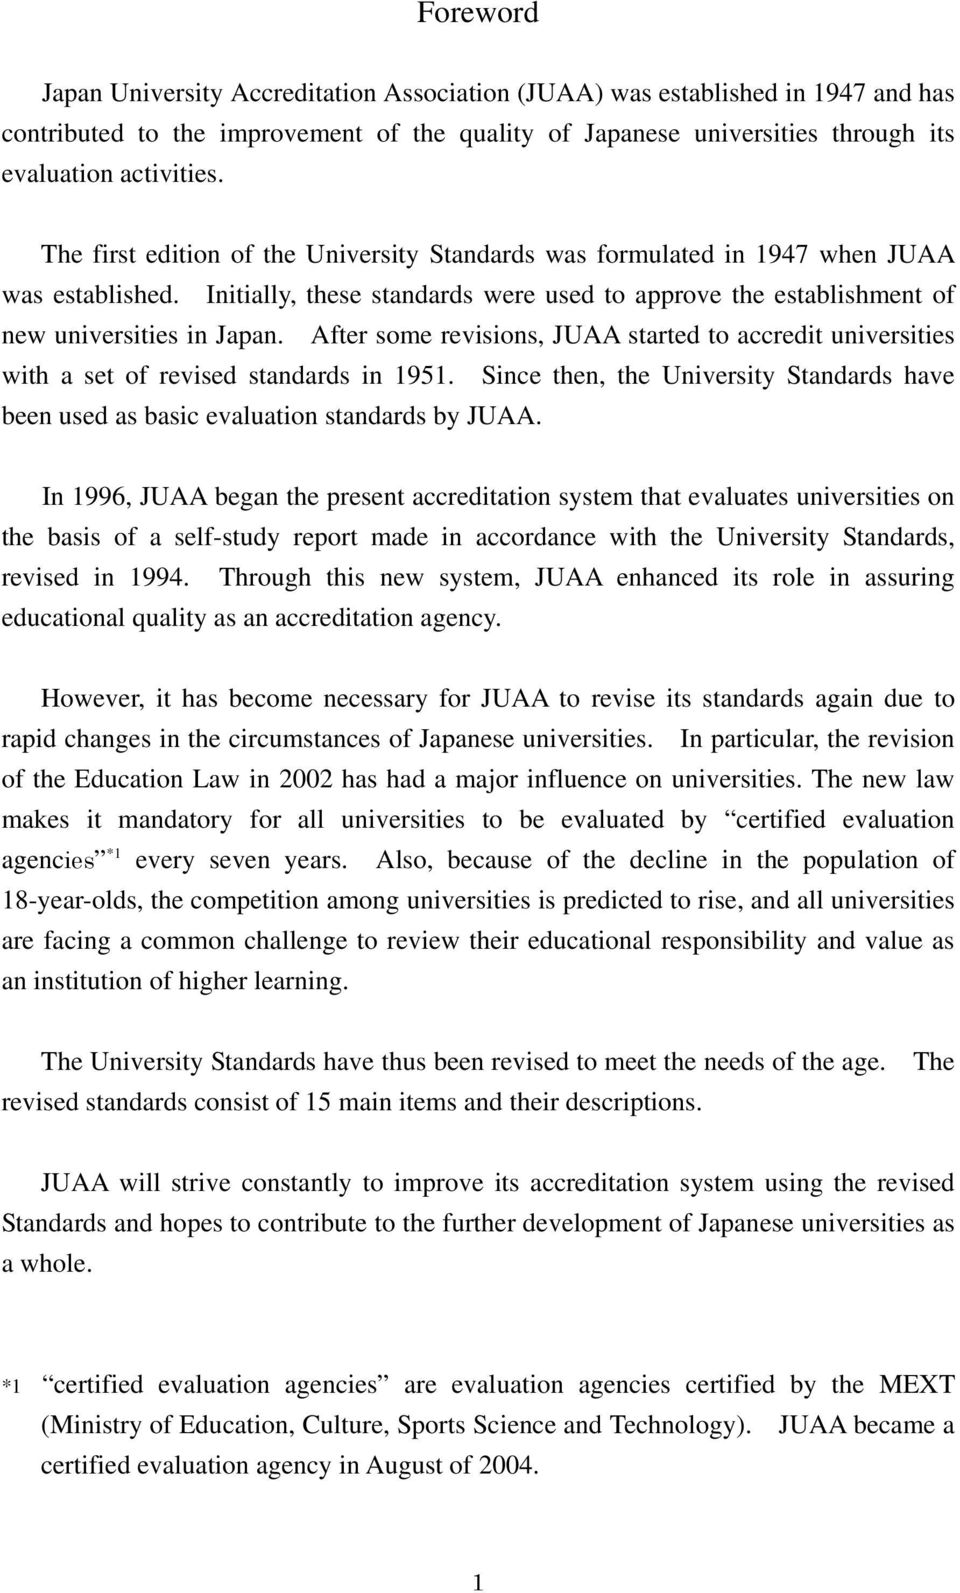 After some revisions, JUAA started to accredit universities with a set of revised standards in 1951. Since then, the University Standards have been used as basic evaluation standards by JUAA.